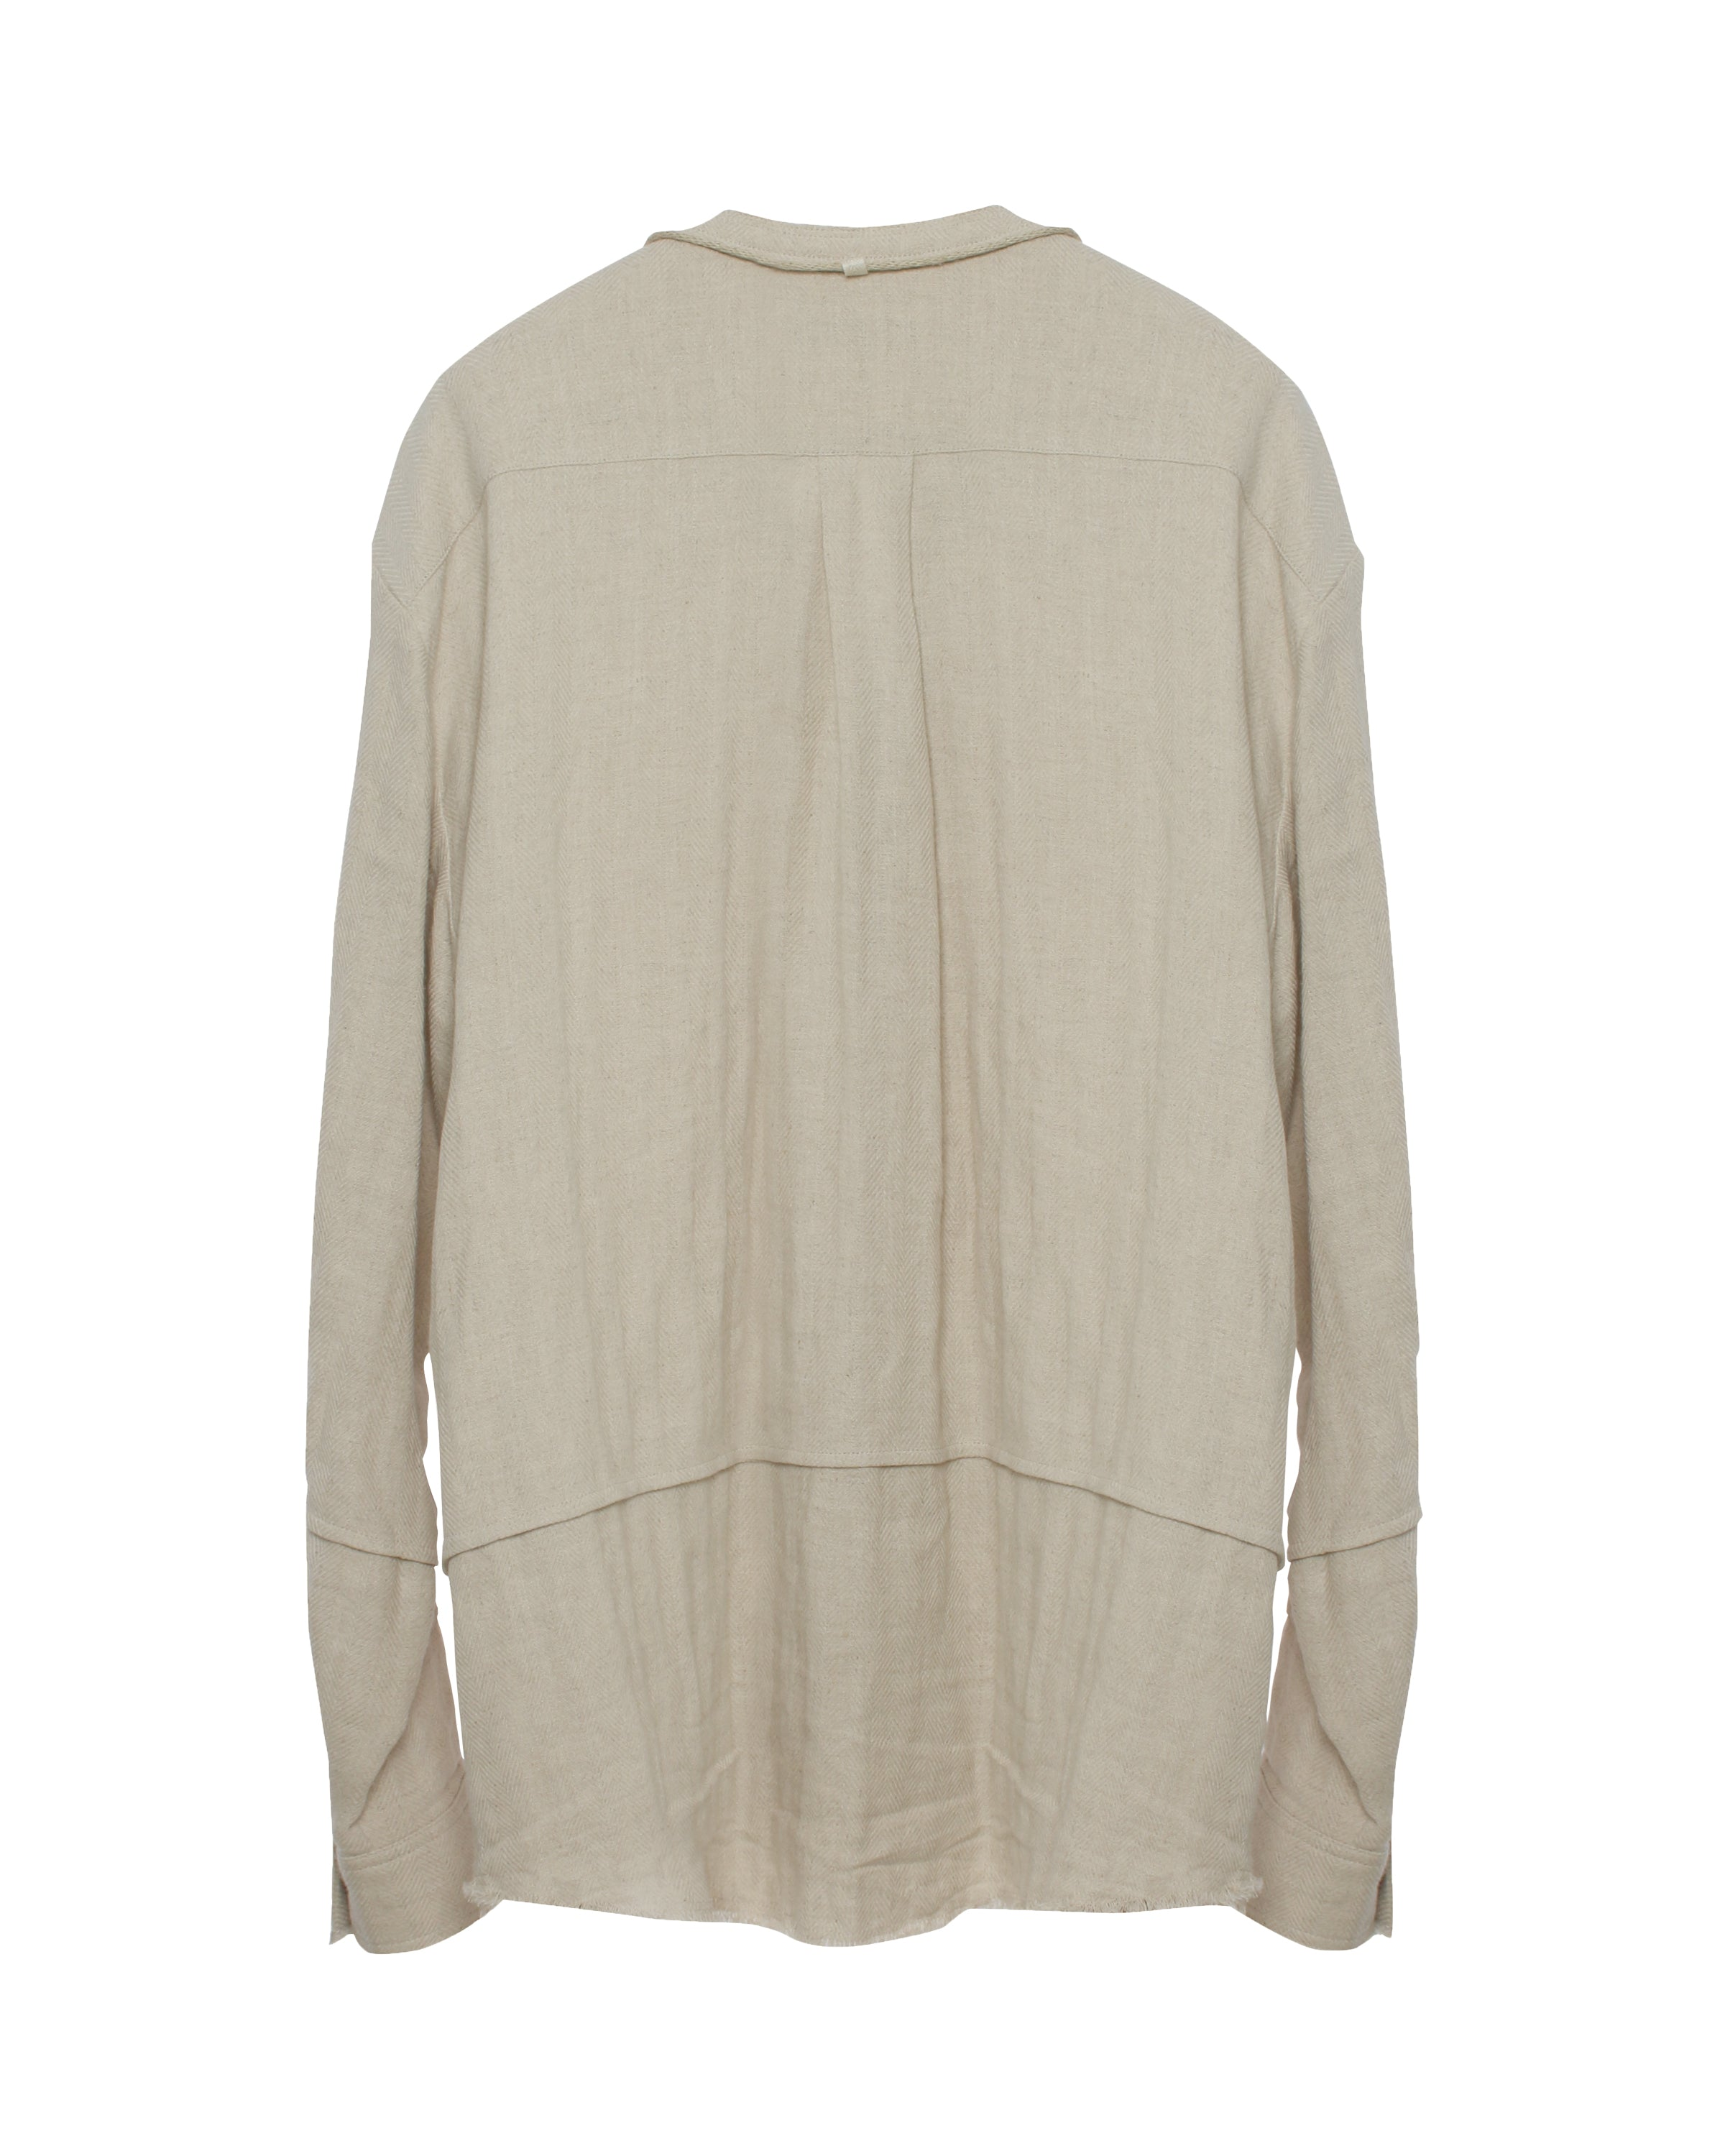 Cut Off China Collar Shirt Beige